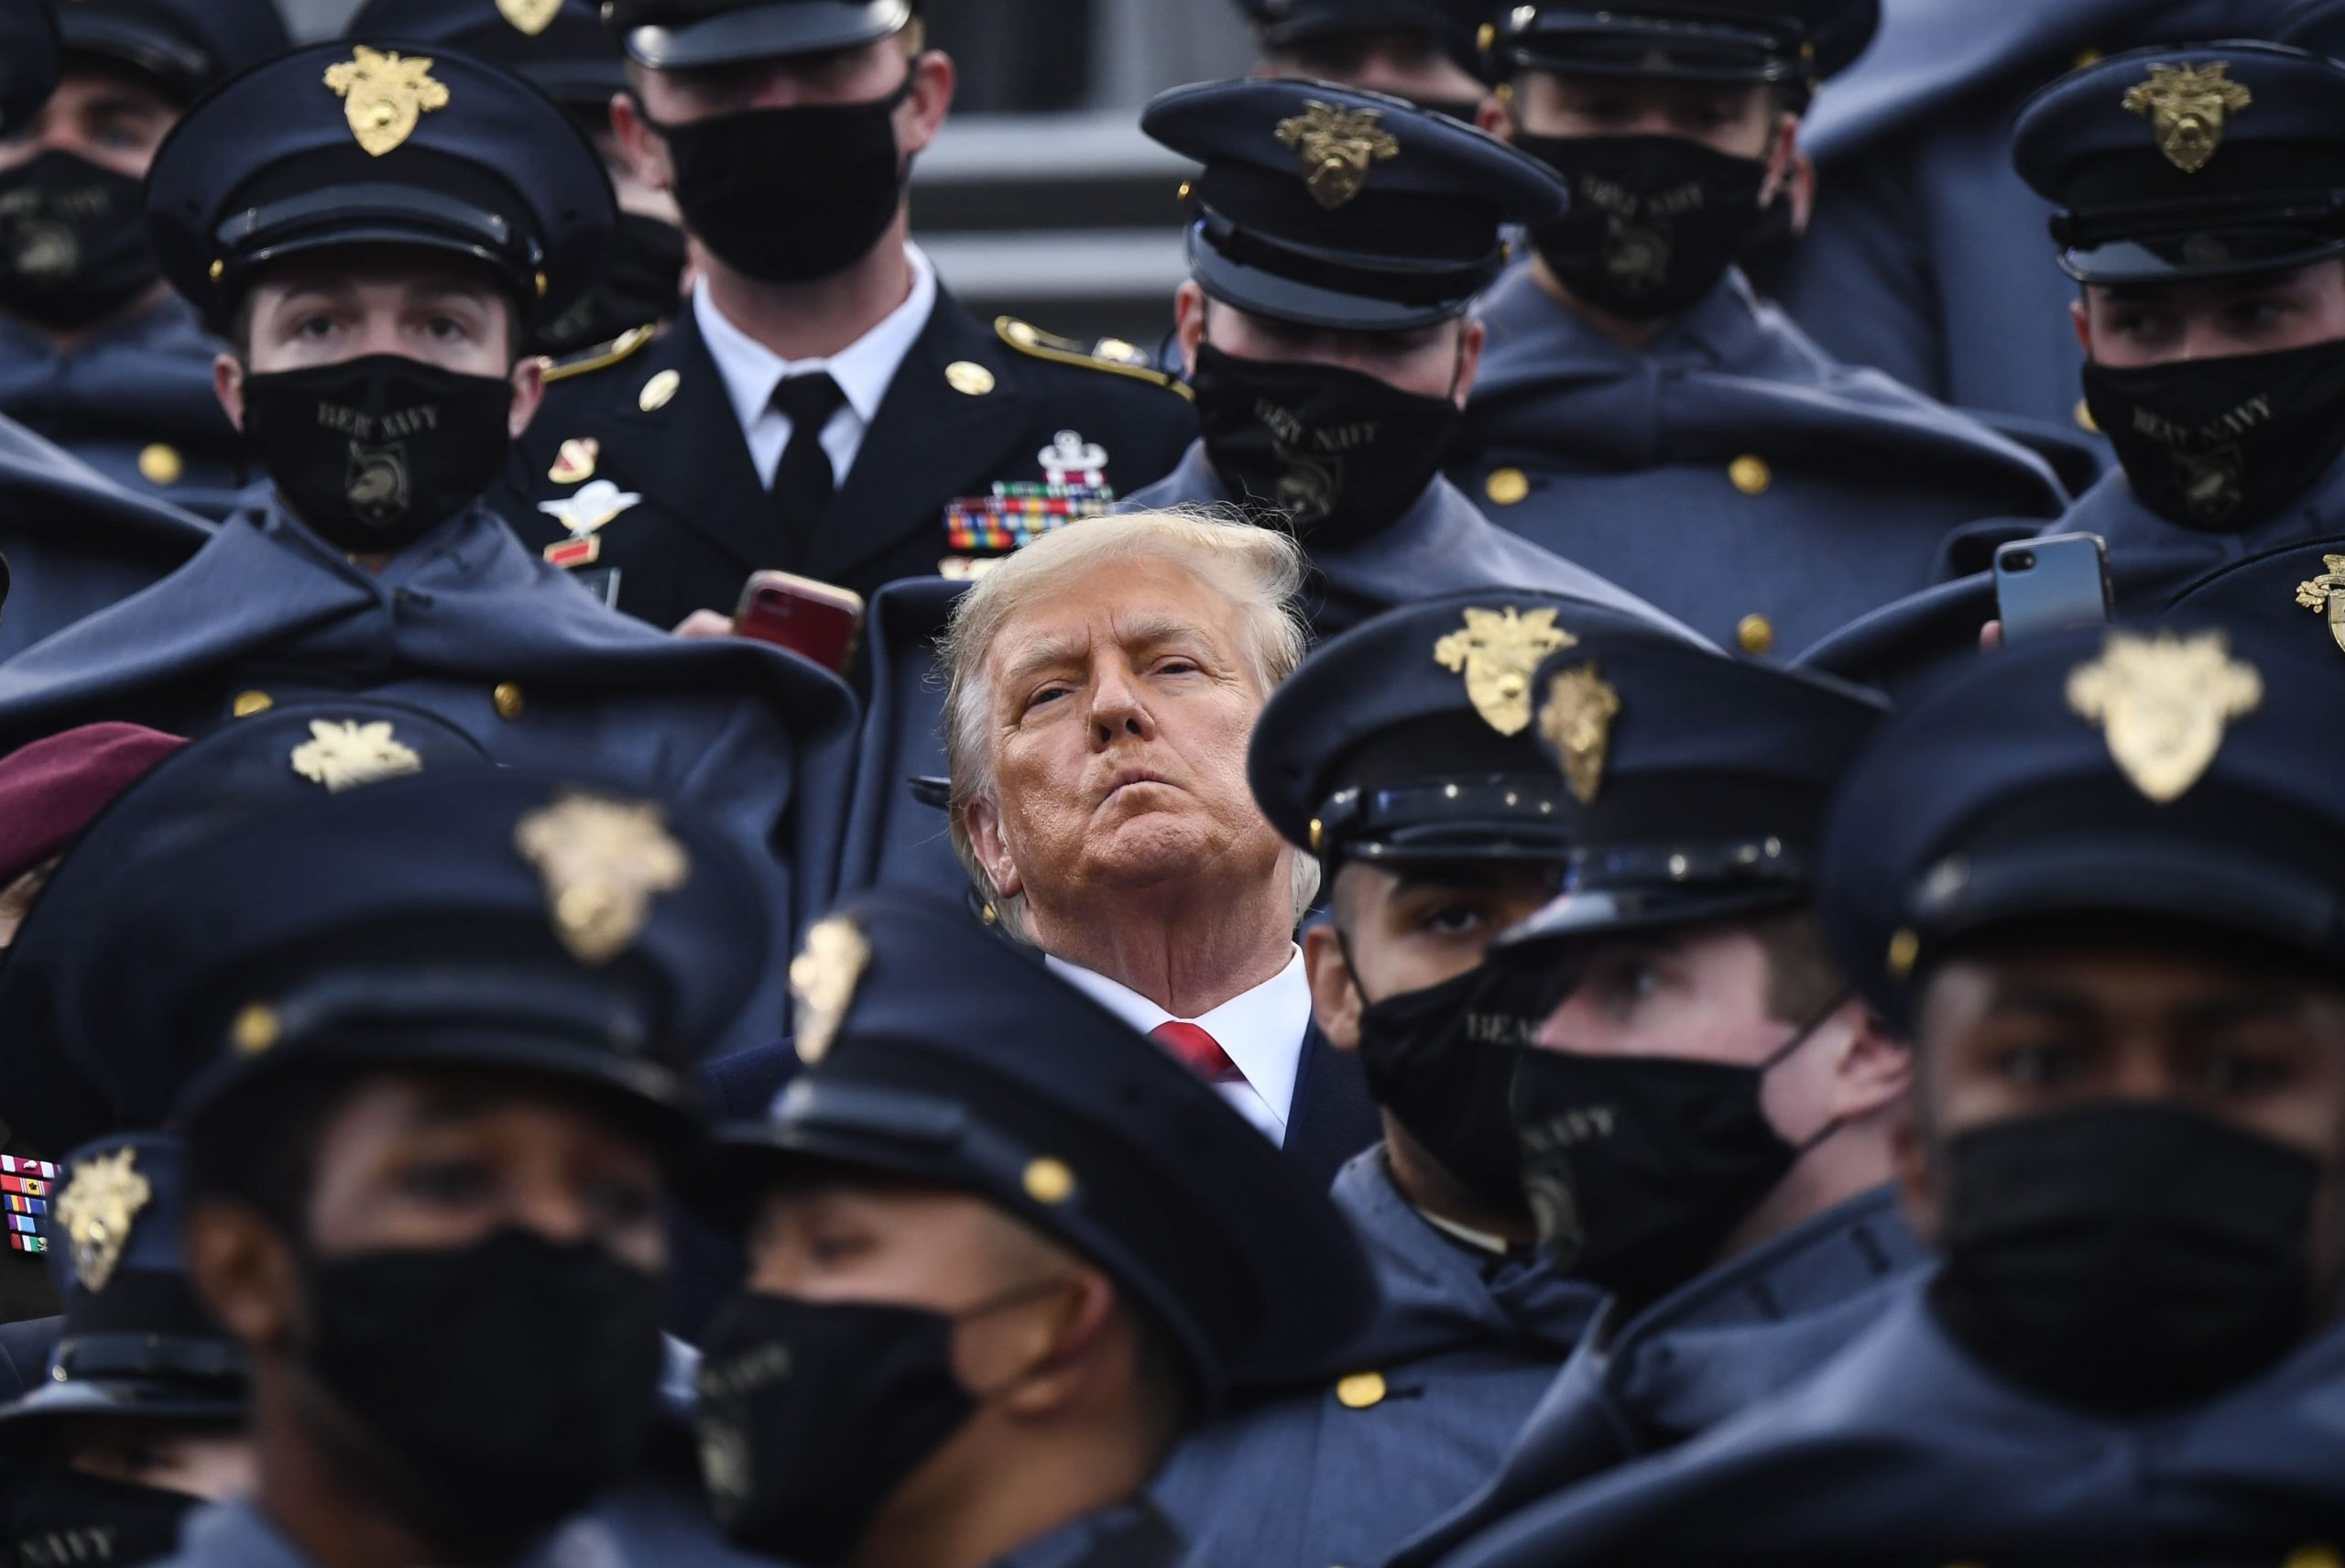 trump-doesnt-put-on-masks-at-military-navy-recreation-regardless-of-covid-considerations